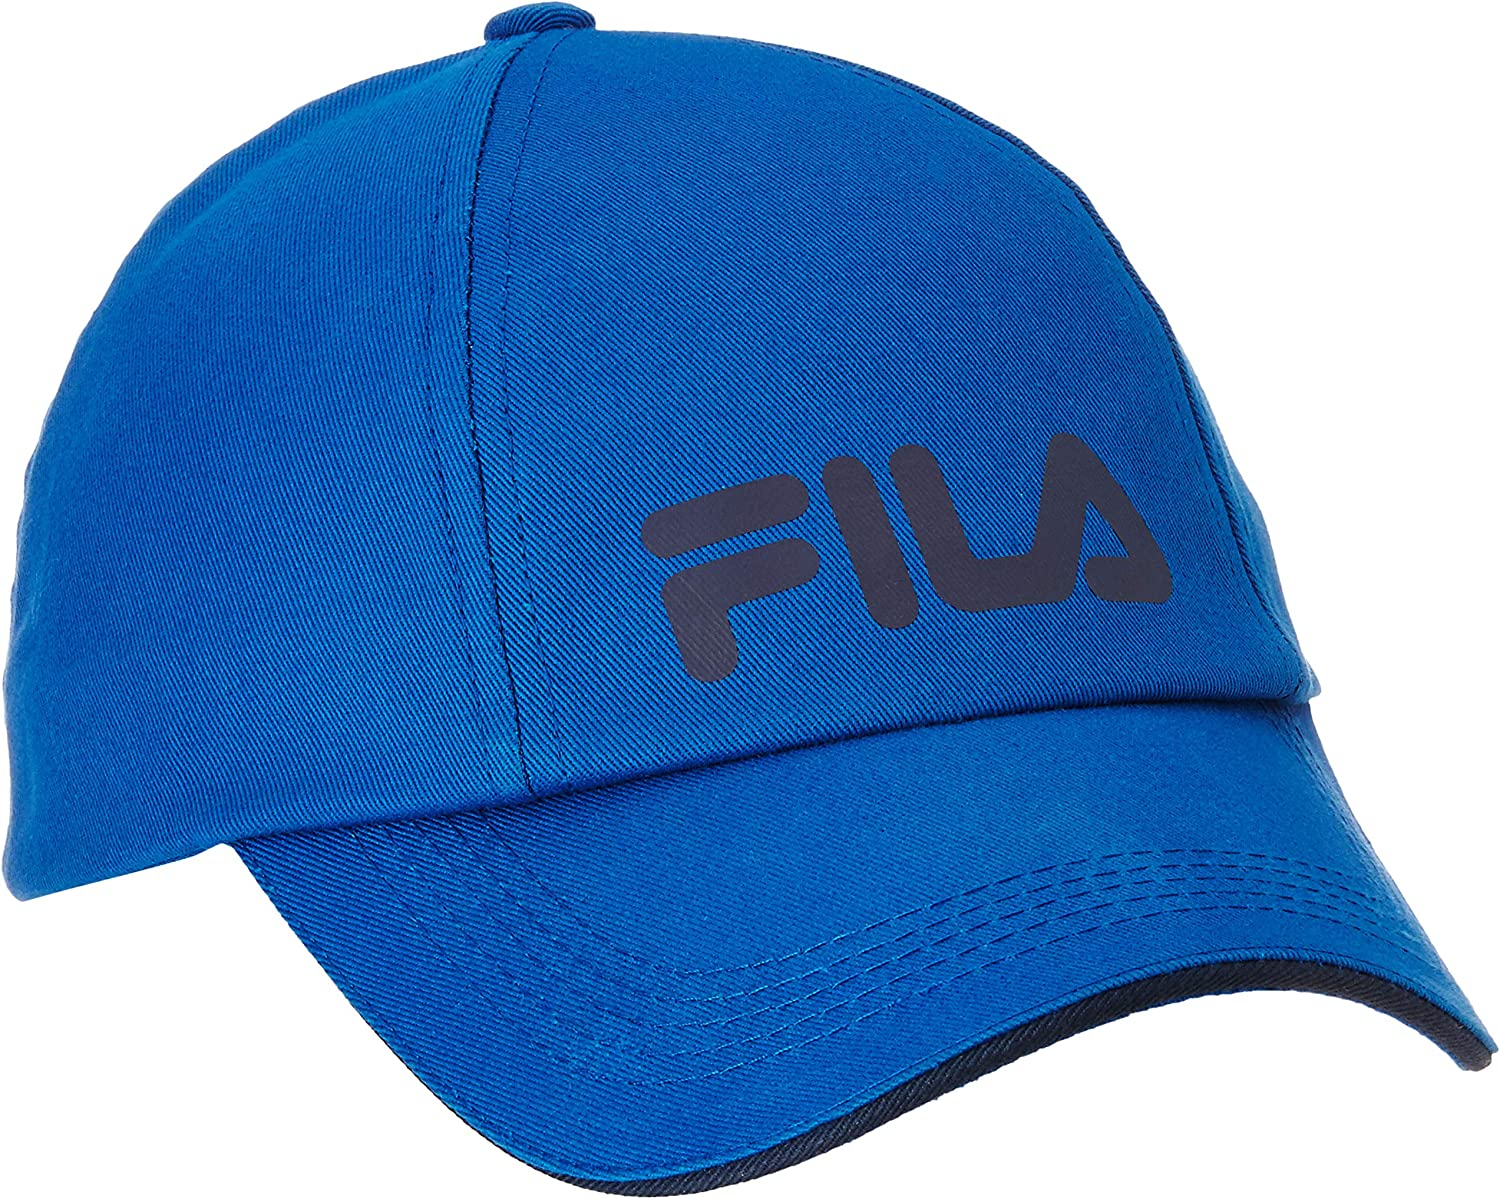 Fila Caps From Rs.159 at Amazon